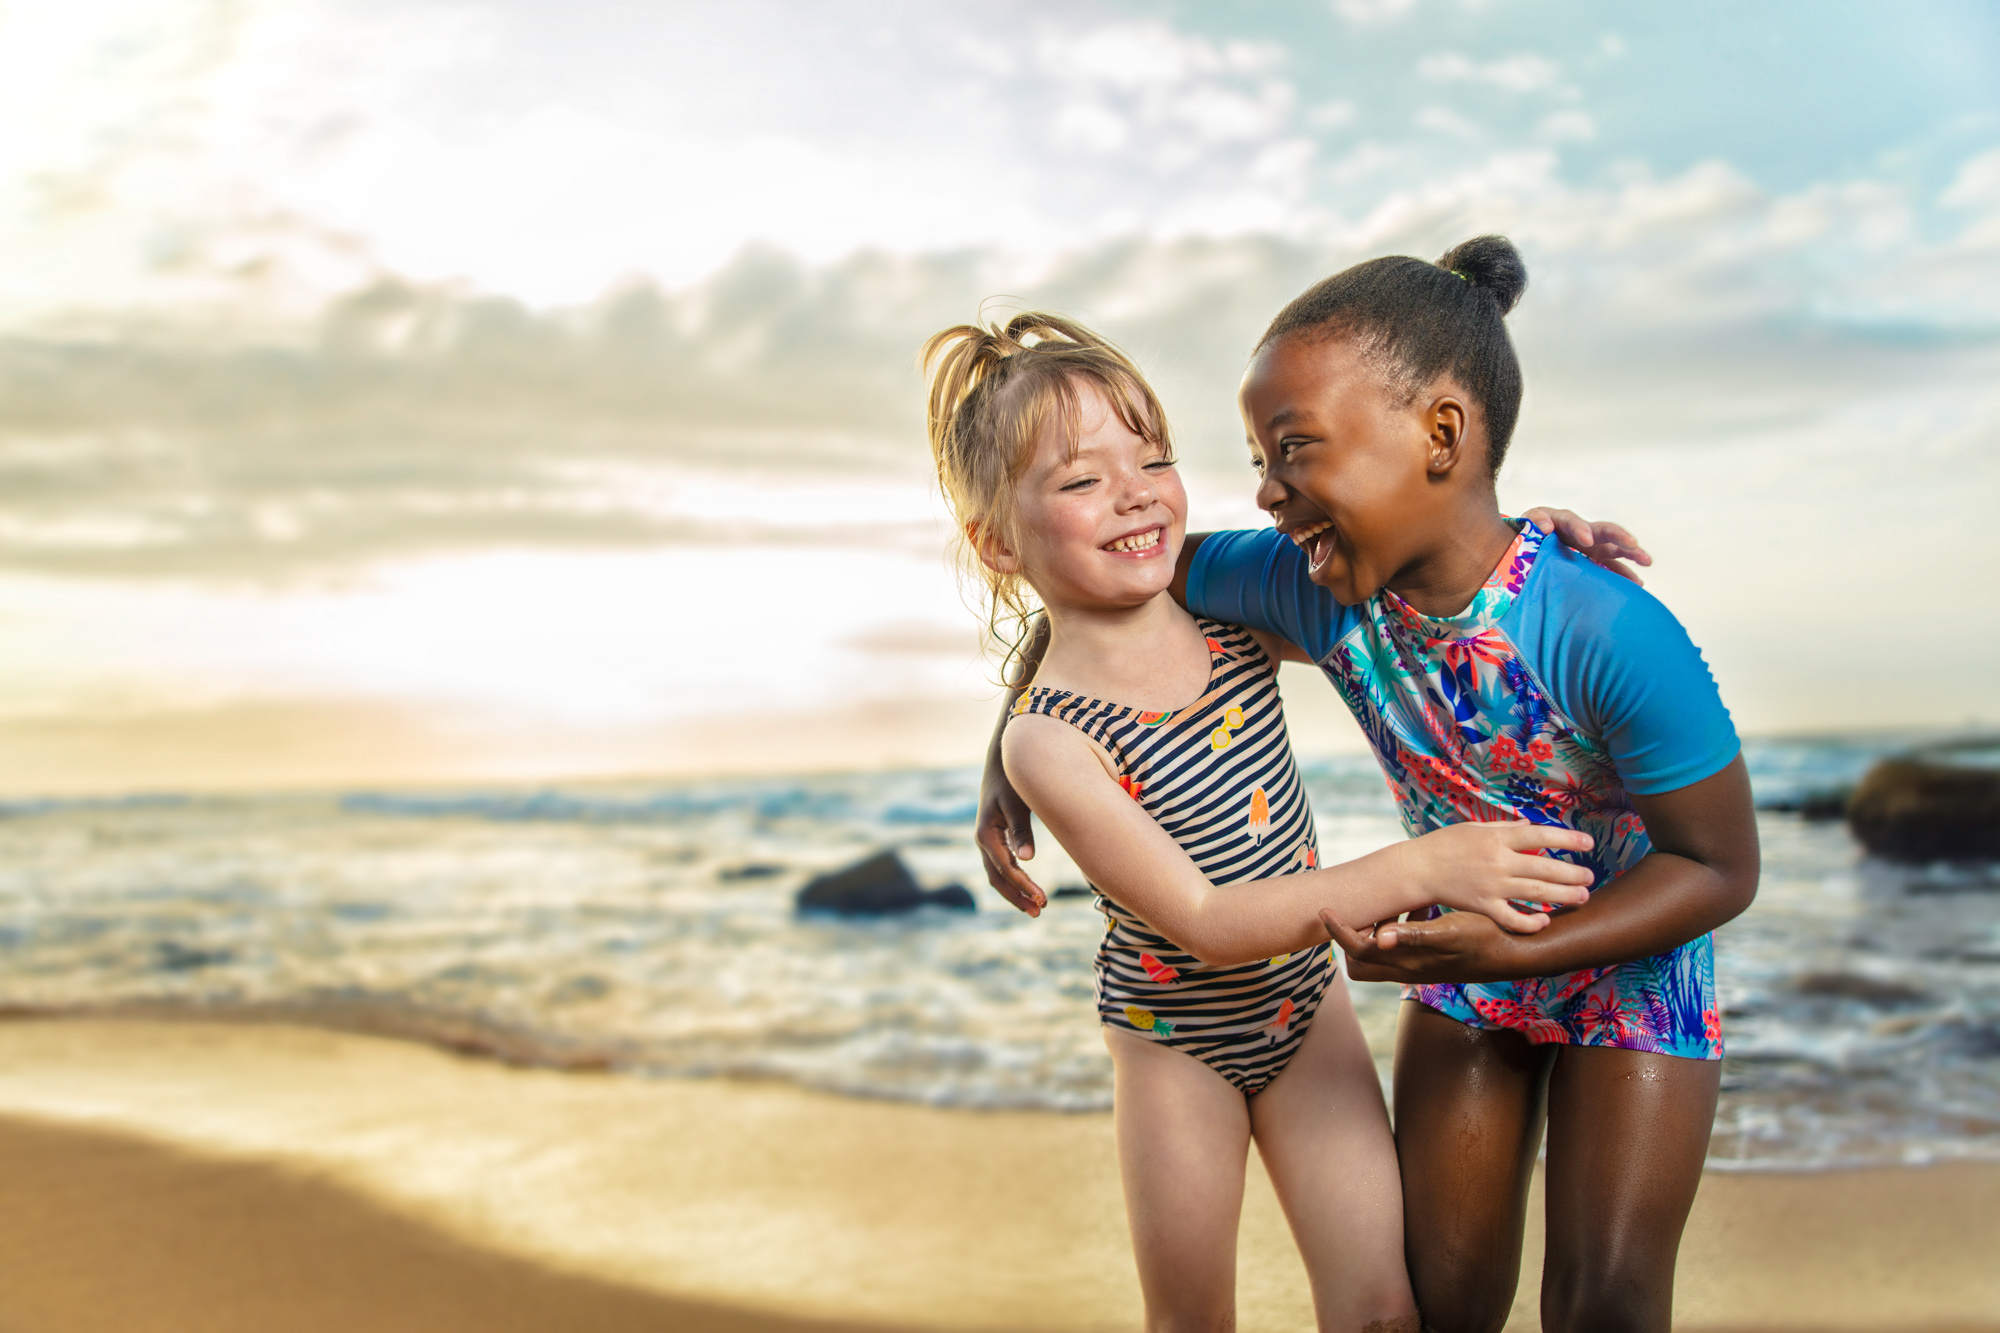 Image of girls playing on the beach at the Beverly Hills Hotel in uMhlanga Rocks, Durban for  Tsogo Sun's Image Library & Content Library by Michelle Wastie Photography